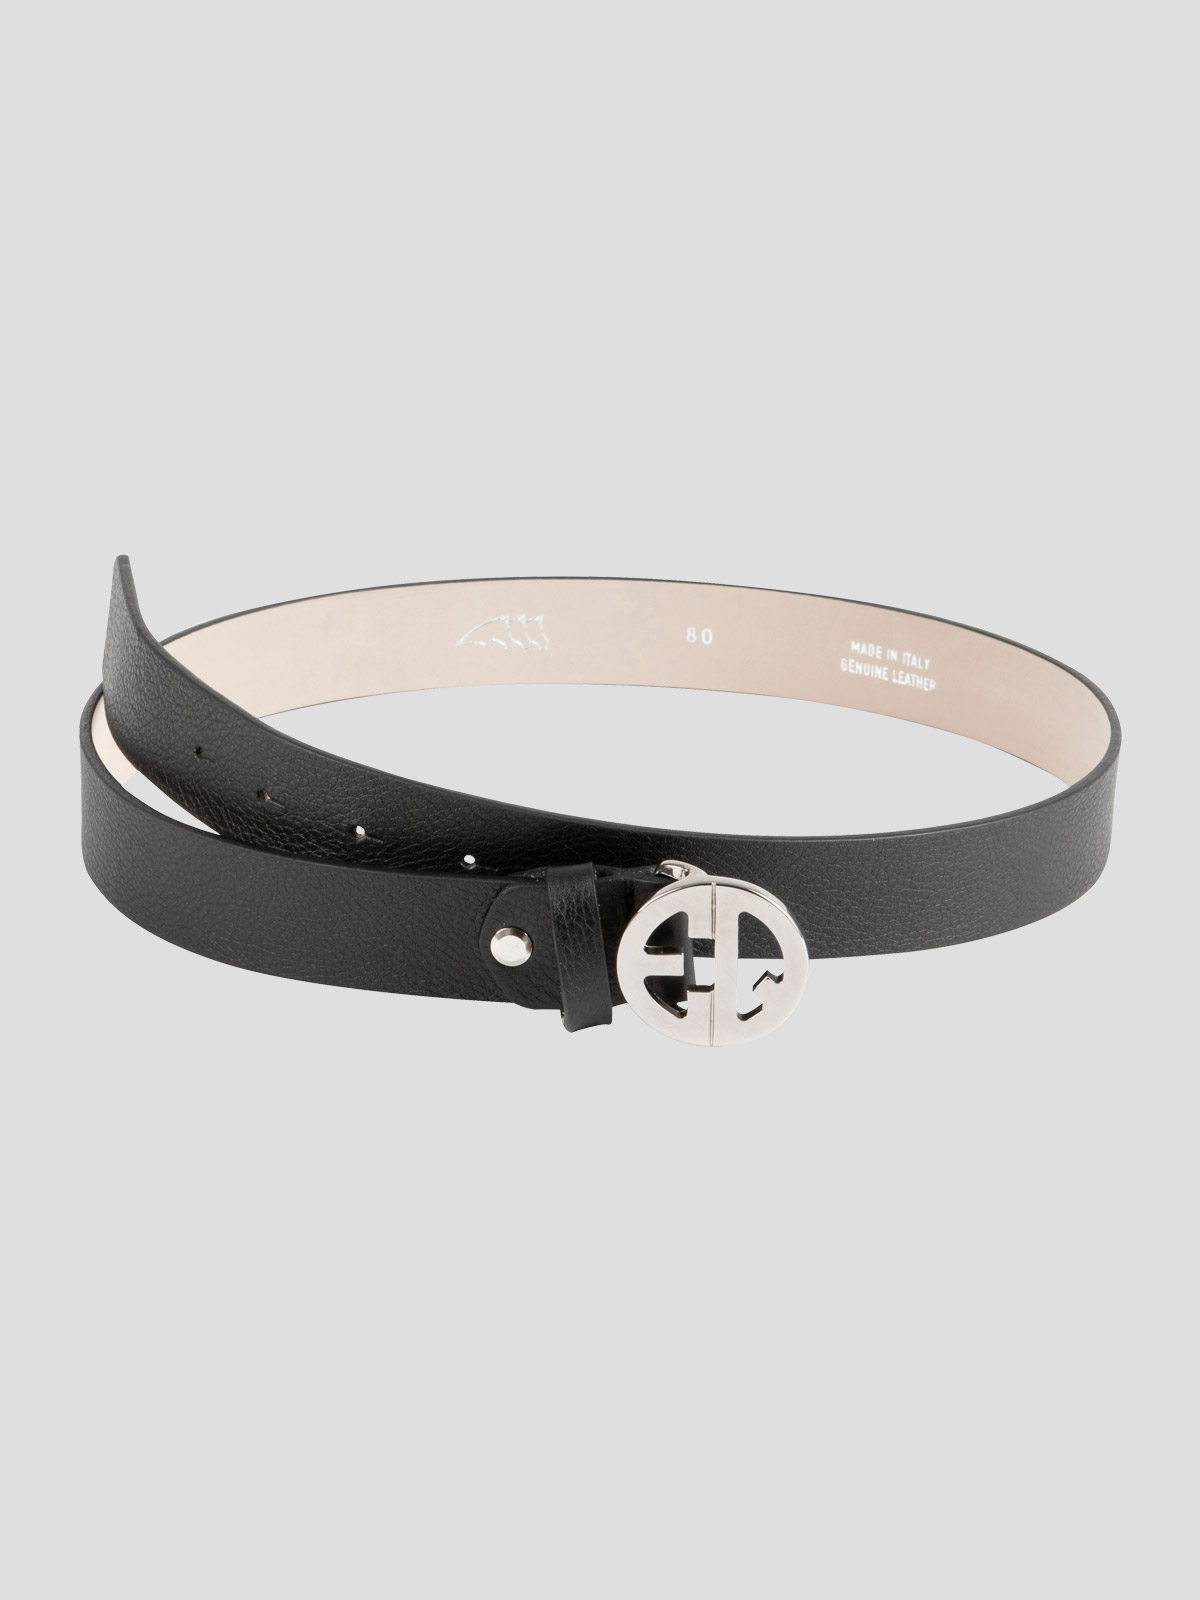 Echilae Equiline leather belt with circle logo buckle